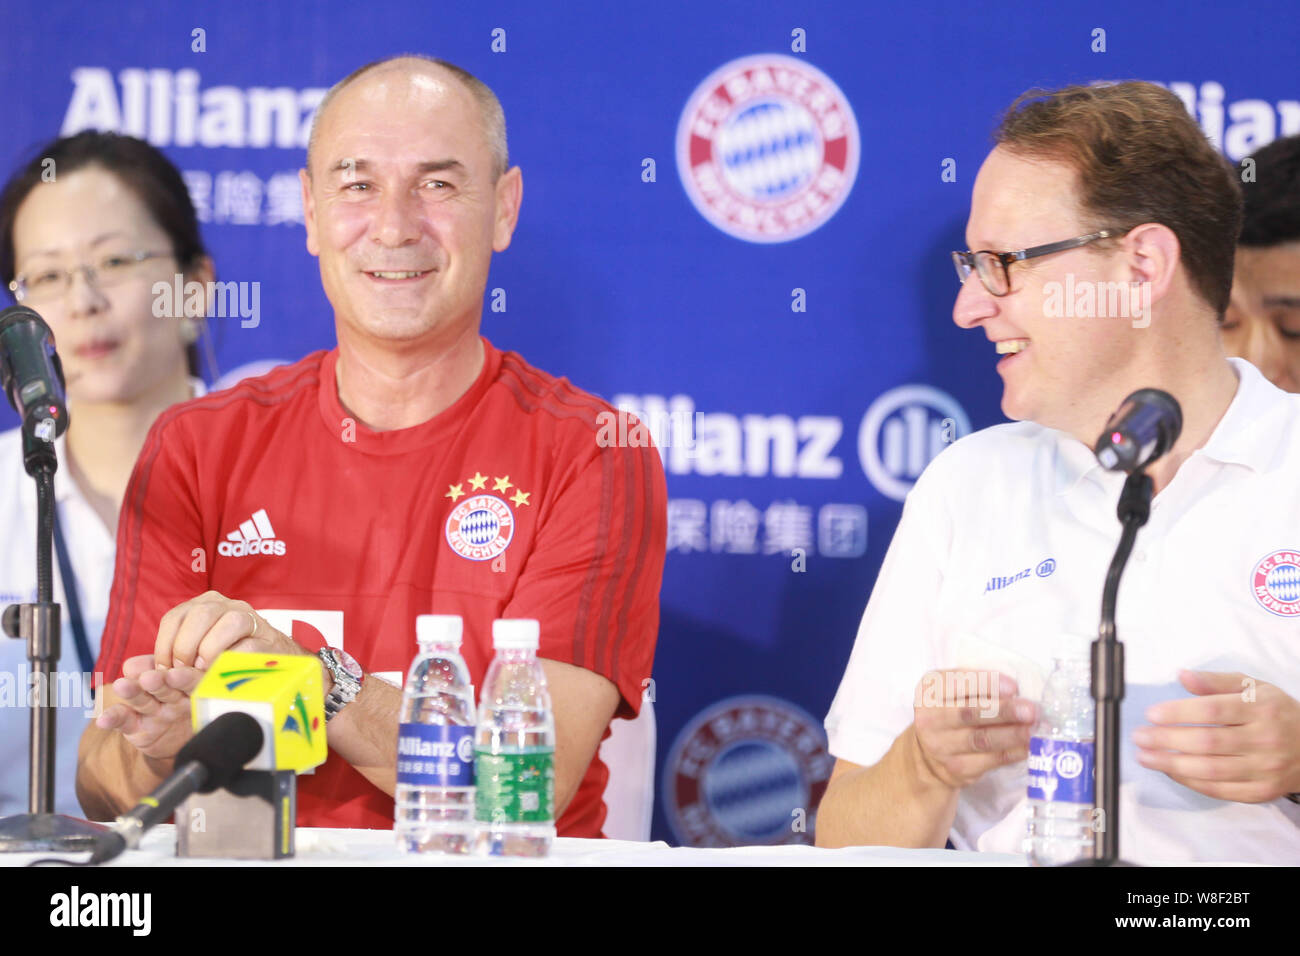 Former German soccer star Raimond Aumann, left, smiles during a fan meeting event in Guangzhou city, south China's Guangdong province, 23 July 2015. Stock Photo